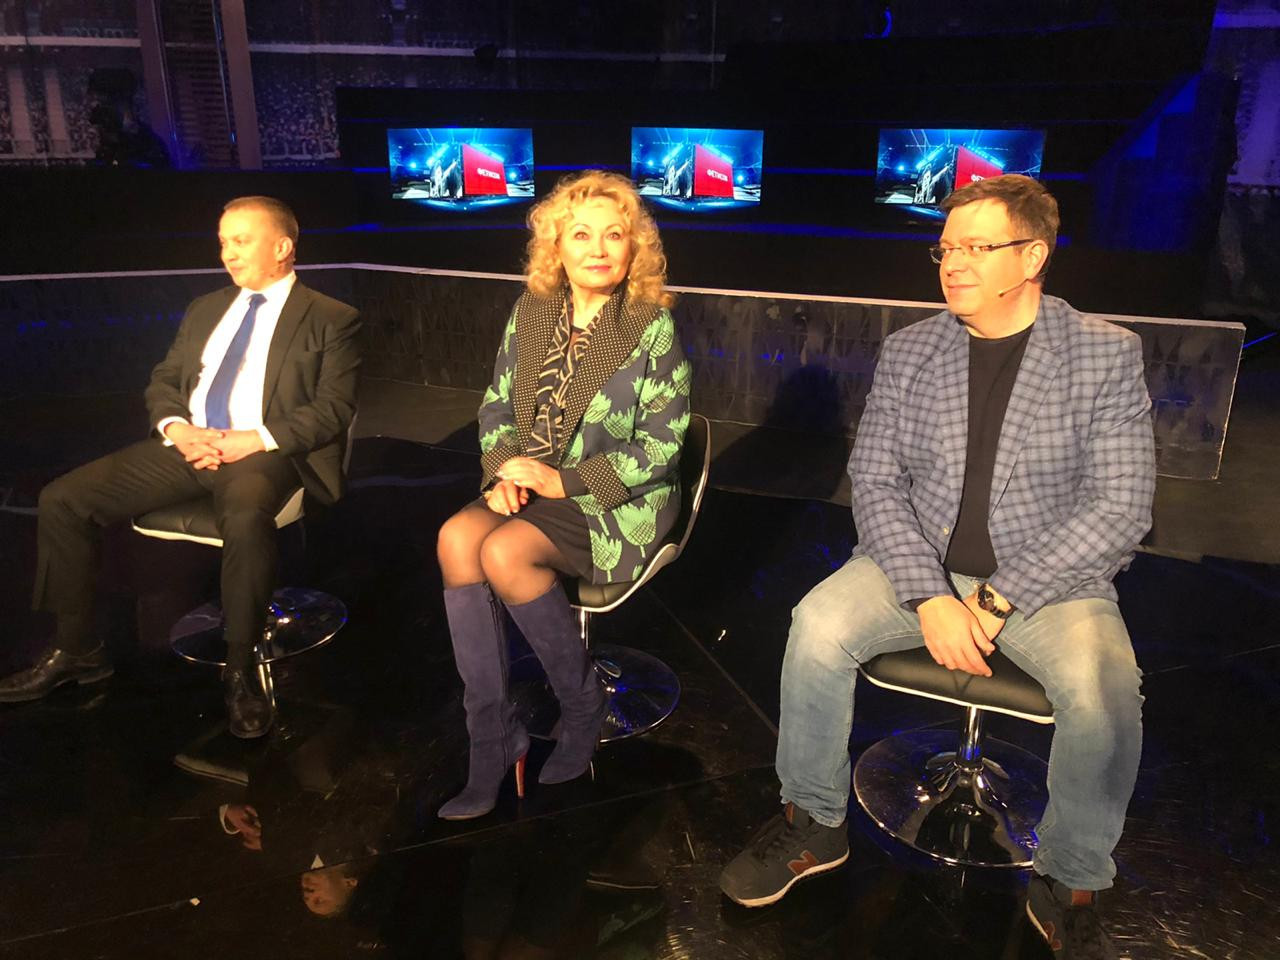 Russian Bobsleigh Federation President Elena Anikina, centre, told Russian television that she is amazed by the Rodchenkov Act ©Zvezdat